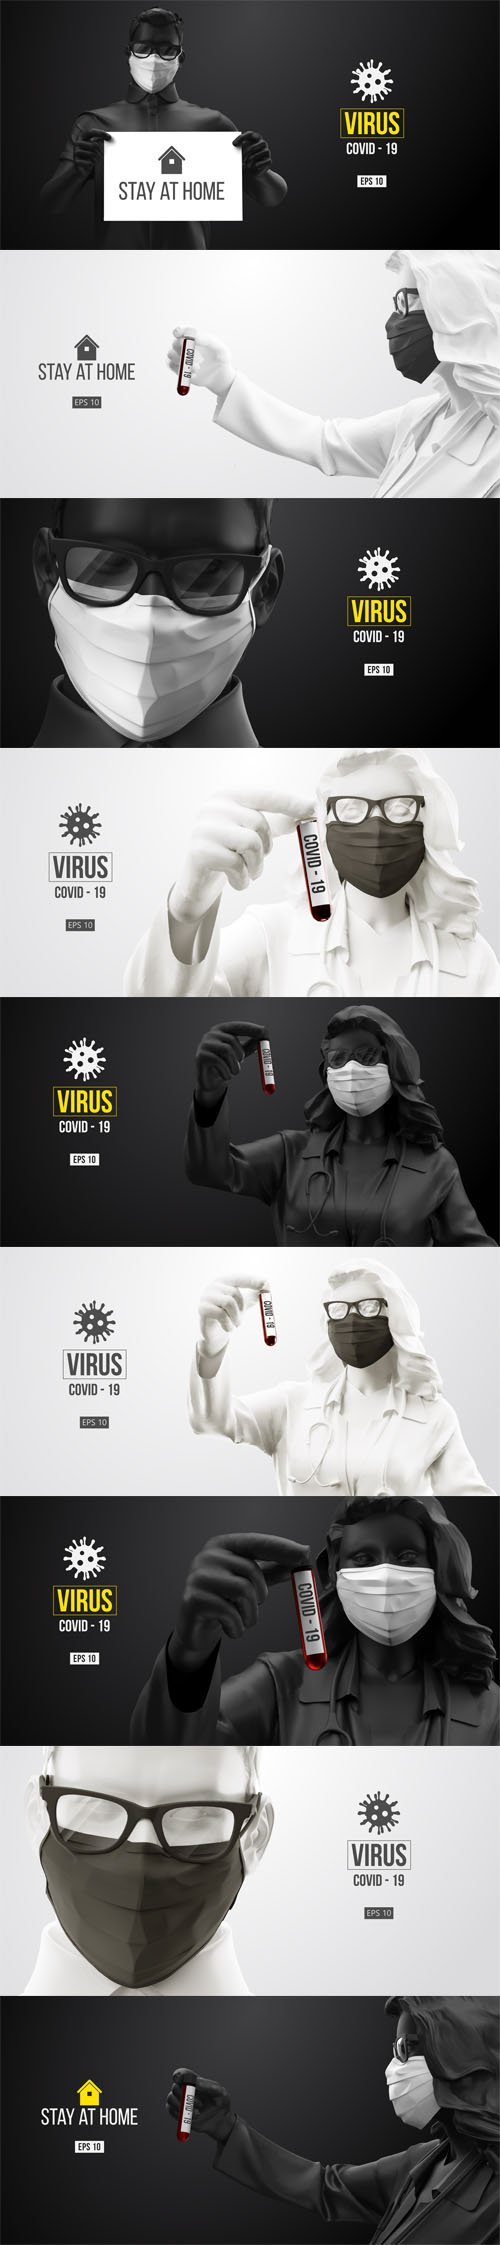 Coronavirus Medical Mask and Virus Protection Vector Banners